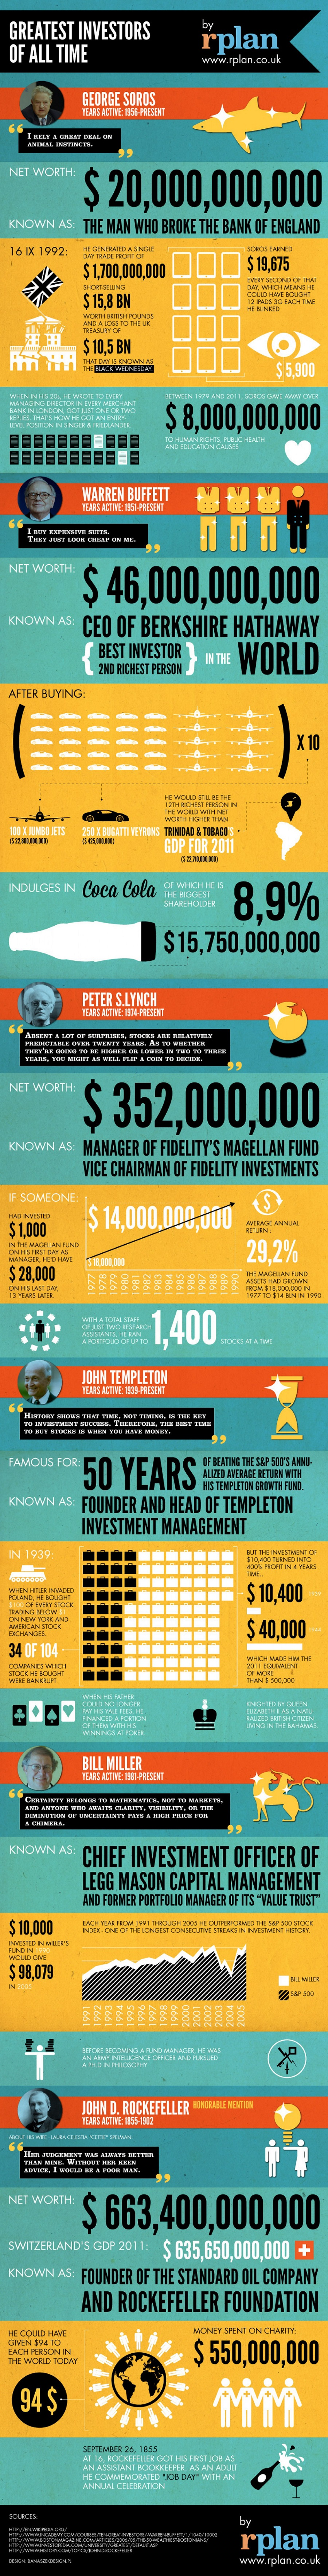 Short stories of some of the most successful investors of all times. An infographic by rPlan.